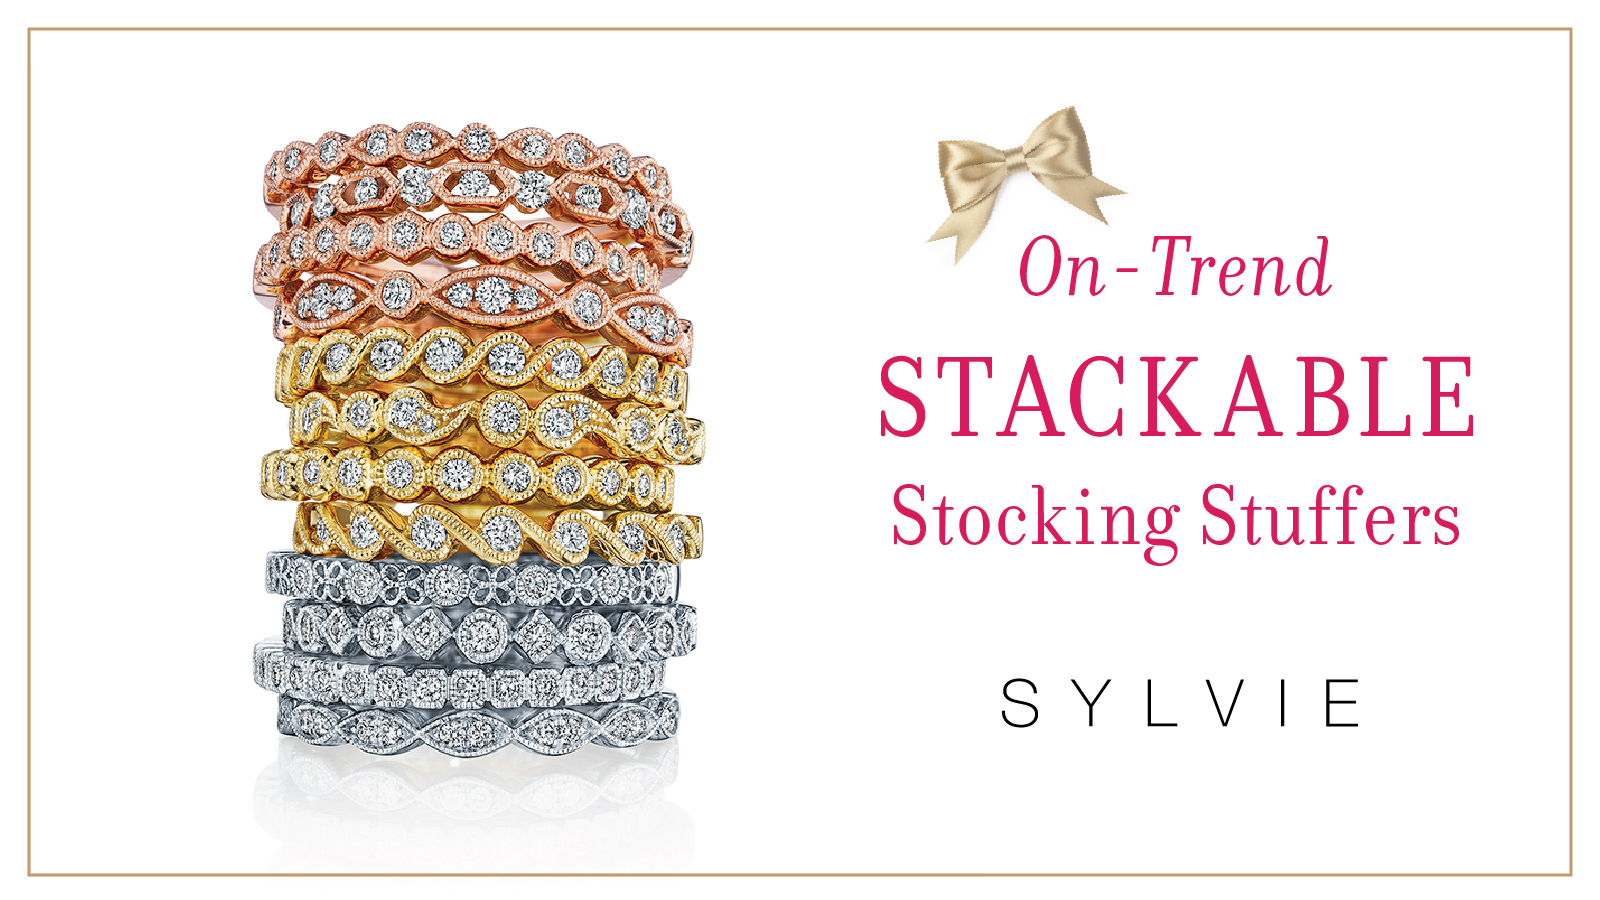 On-Trend Stackable Band Stocking Stuffers - Sylvie Collection